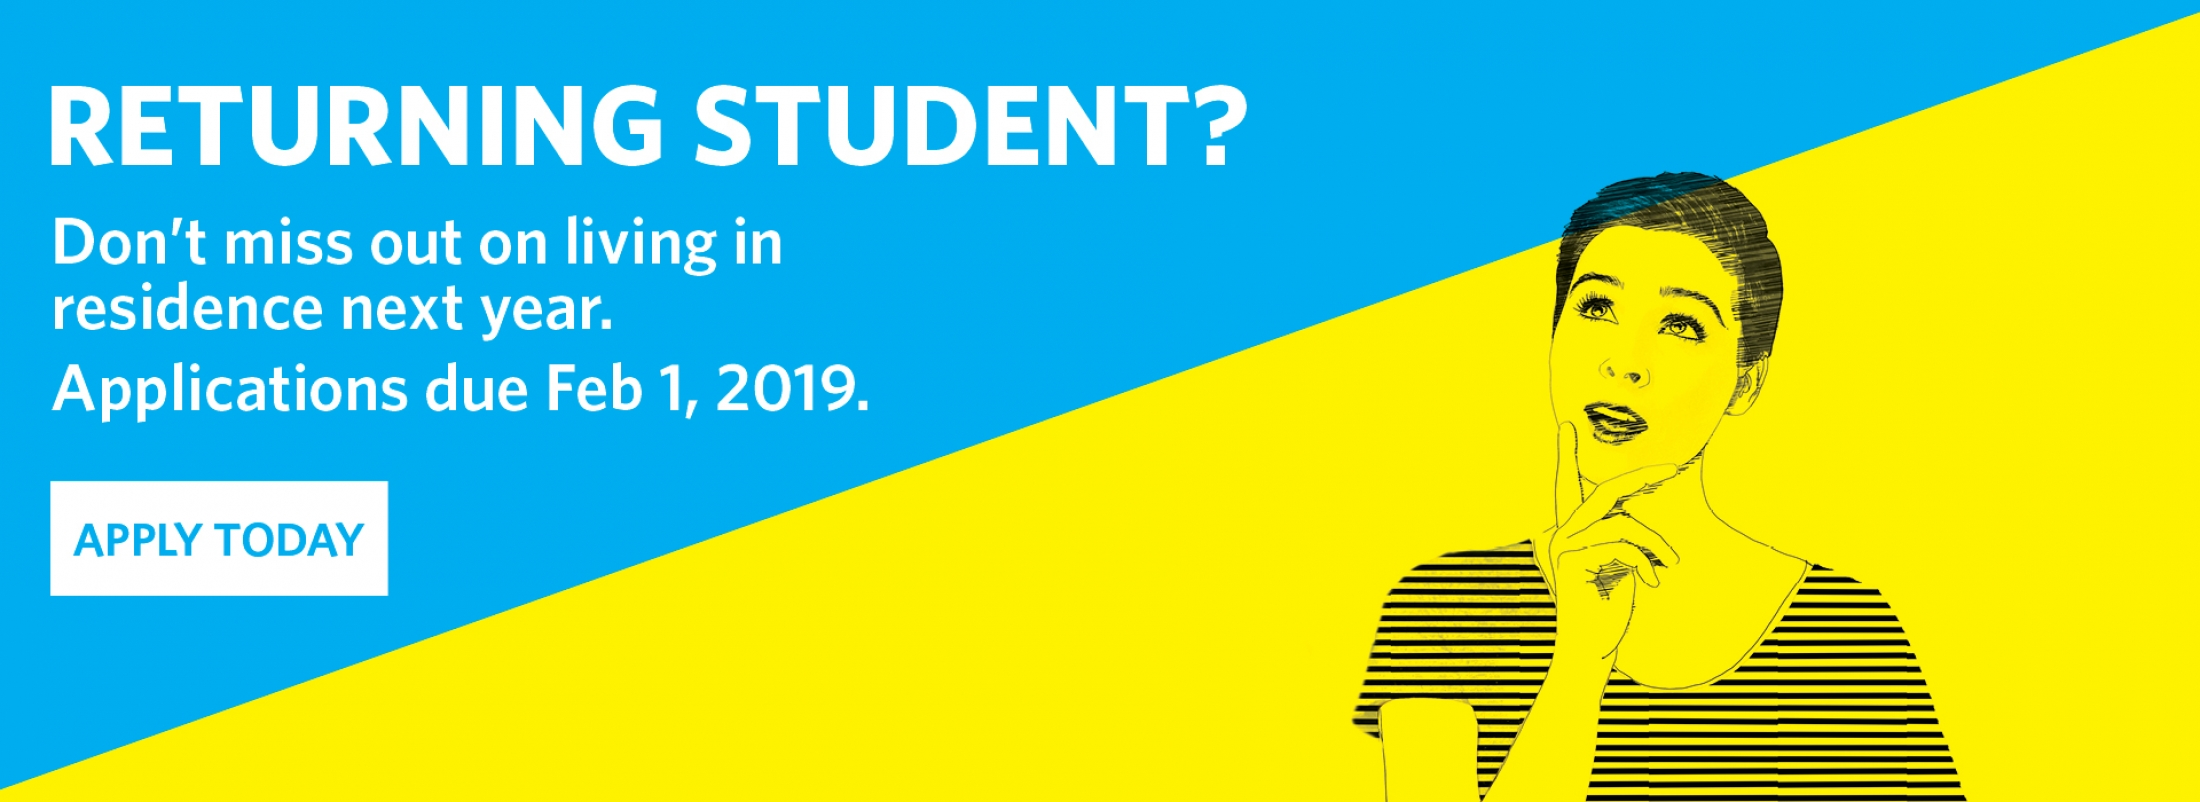 Returning student? Apply for residence by February 1, 2019.